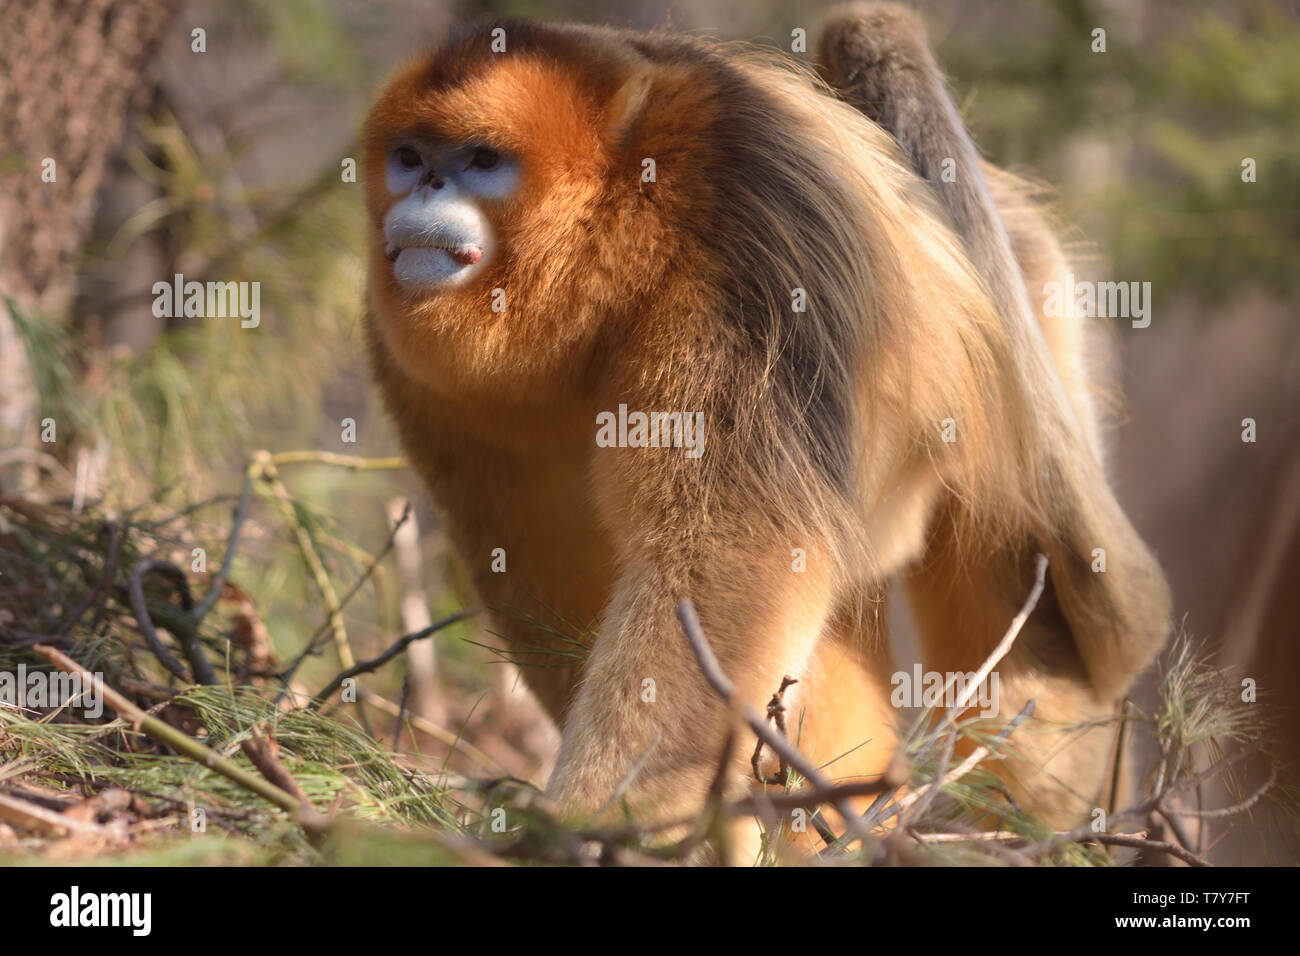 Male Golden Snub-nosed Monkey (Rhinopithecus roxellana) patrolling his territory in the chinese mountains - Stock Image